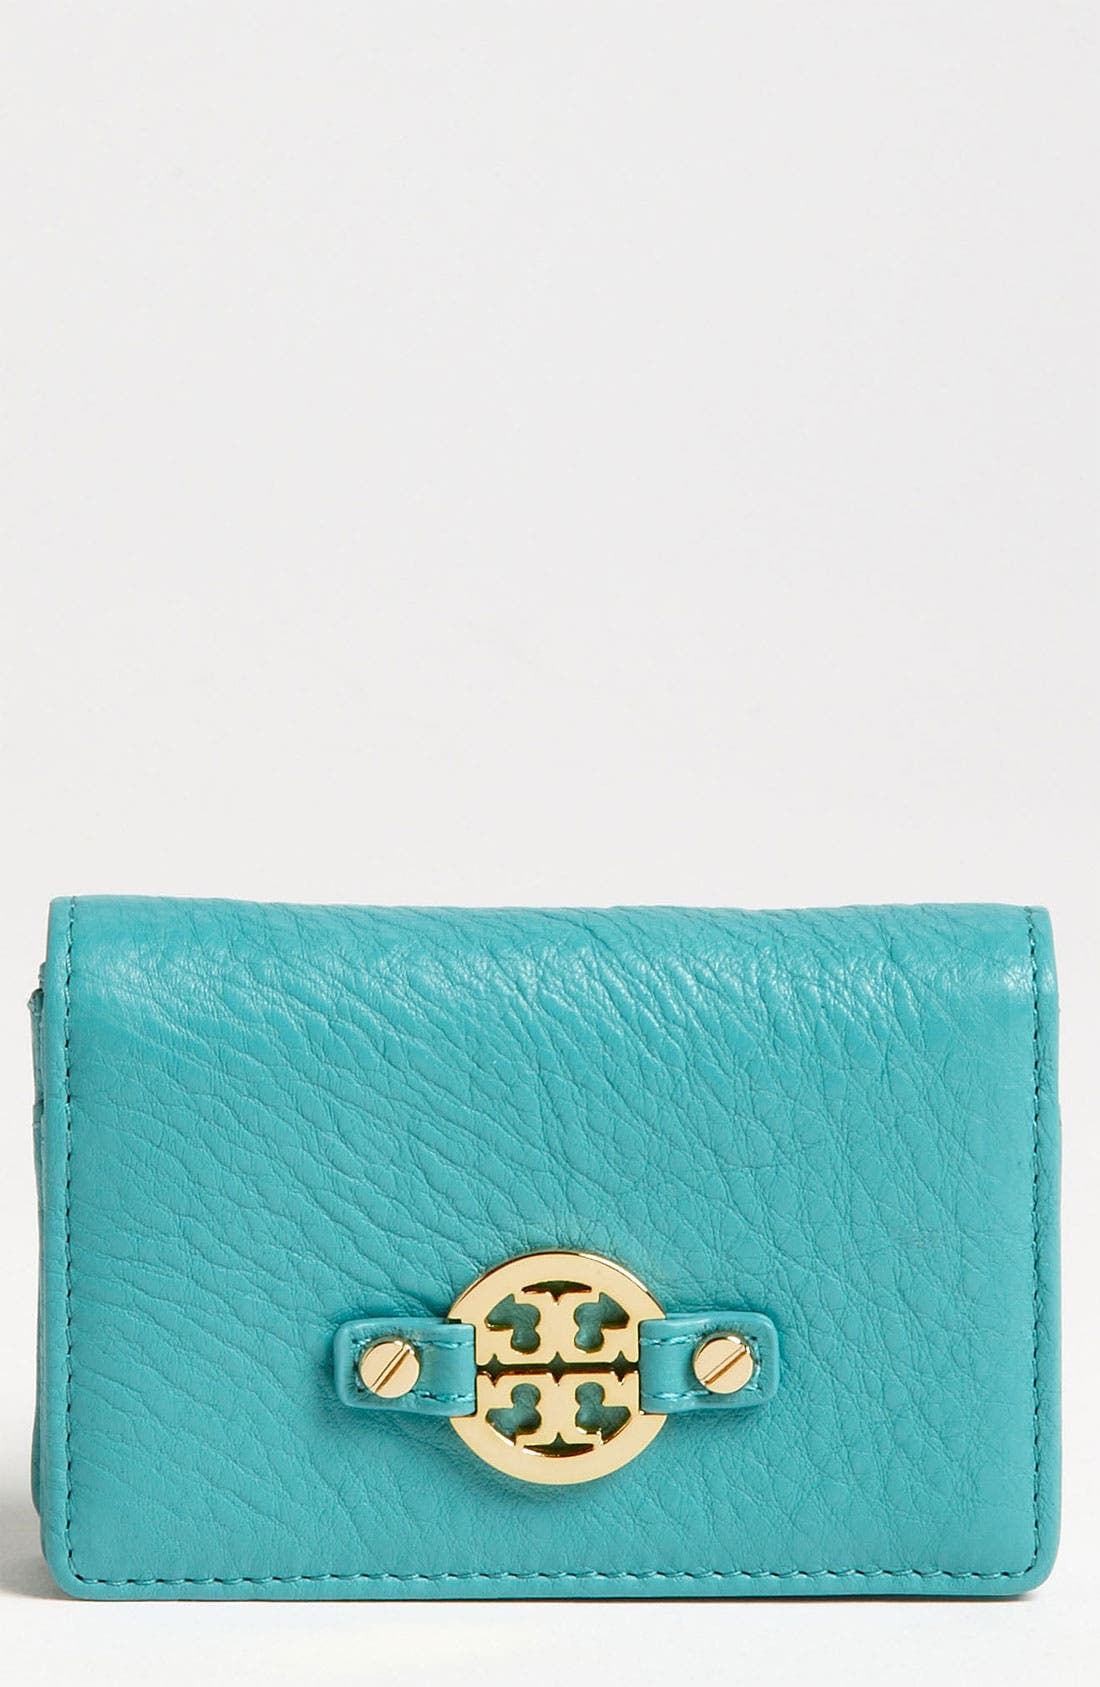 Main Image - Tory Burch 'Amanda' Foldable Card Case